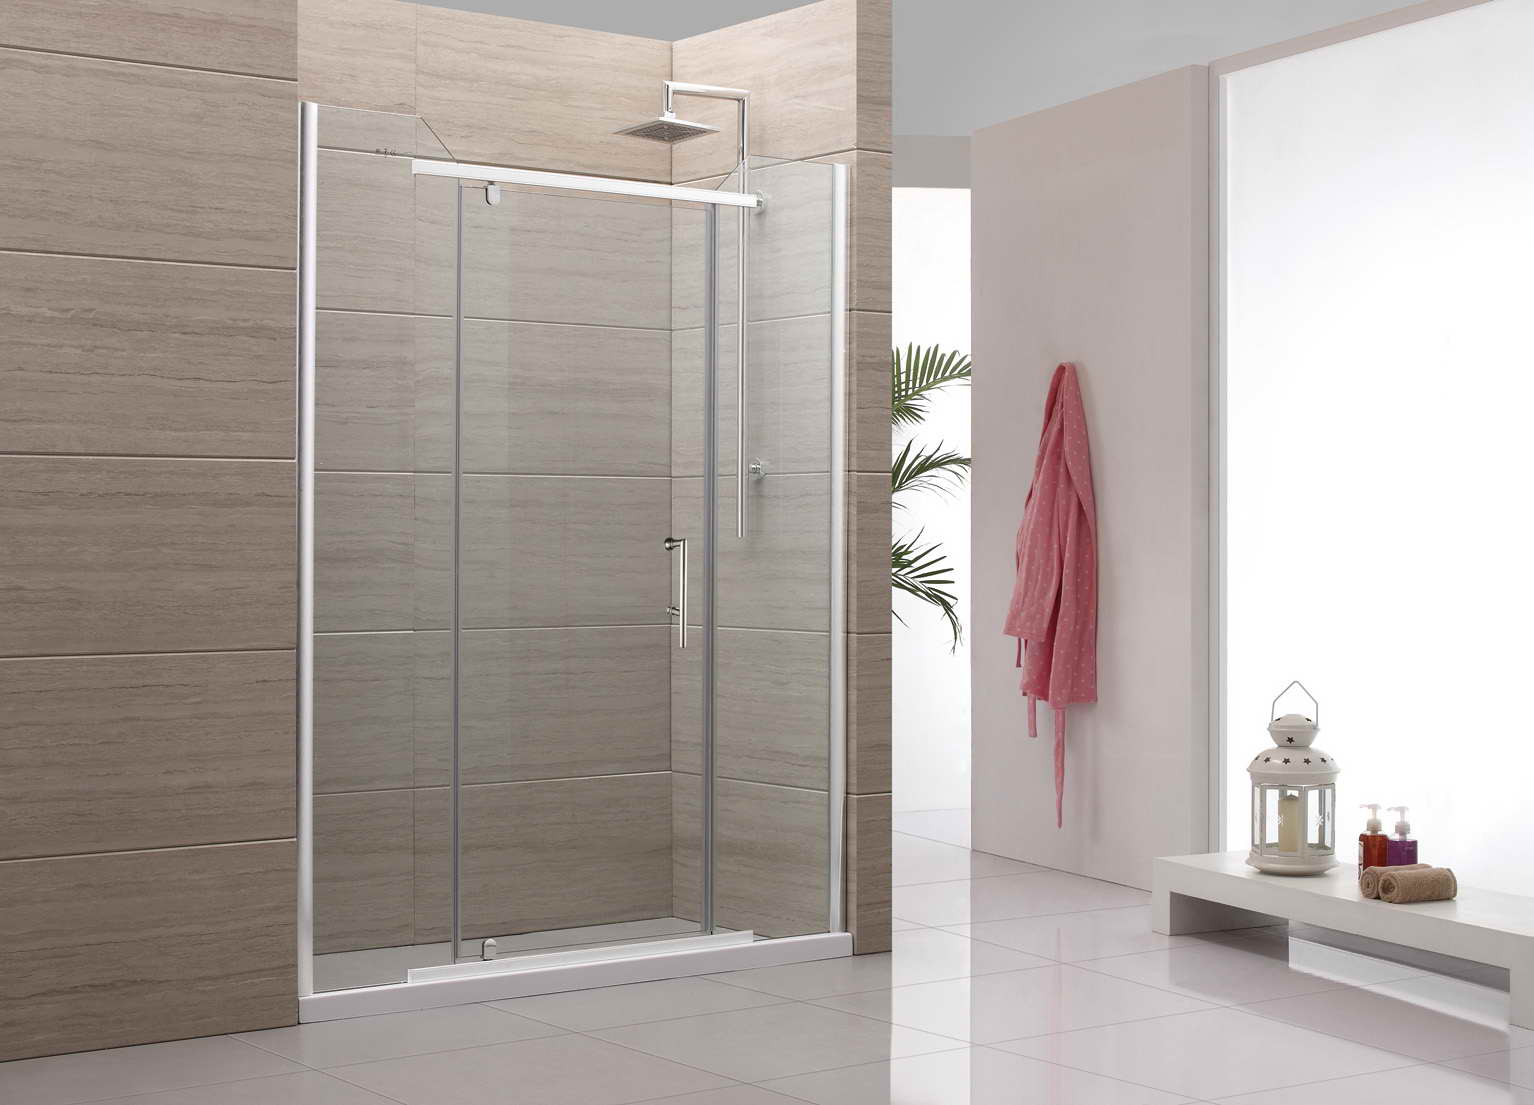 Rollers-for-construction-of-sliding-shower-glass-doors